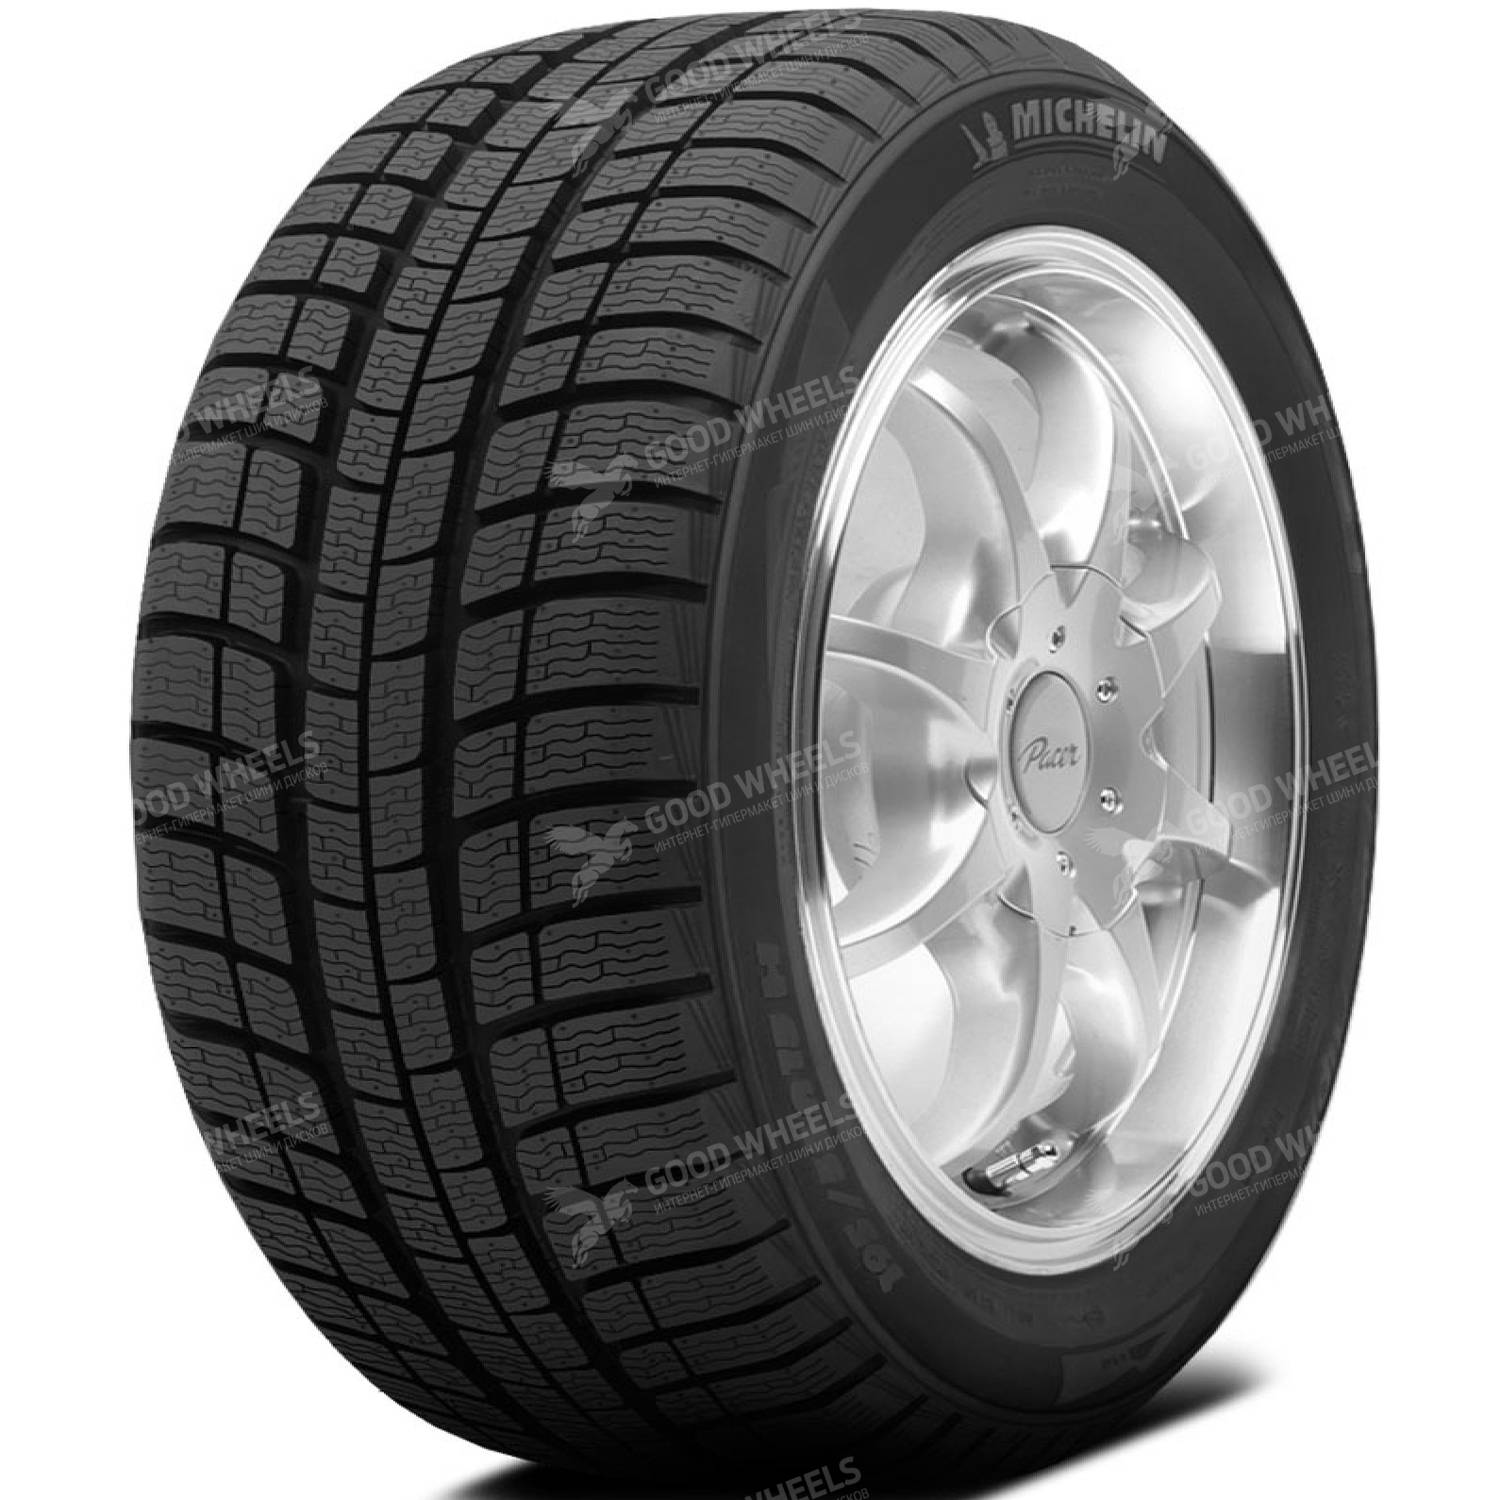 Michelin Pilot Alpin 2 (PA2) 245/45 R18 100V